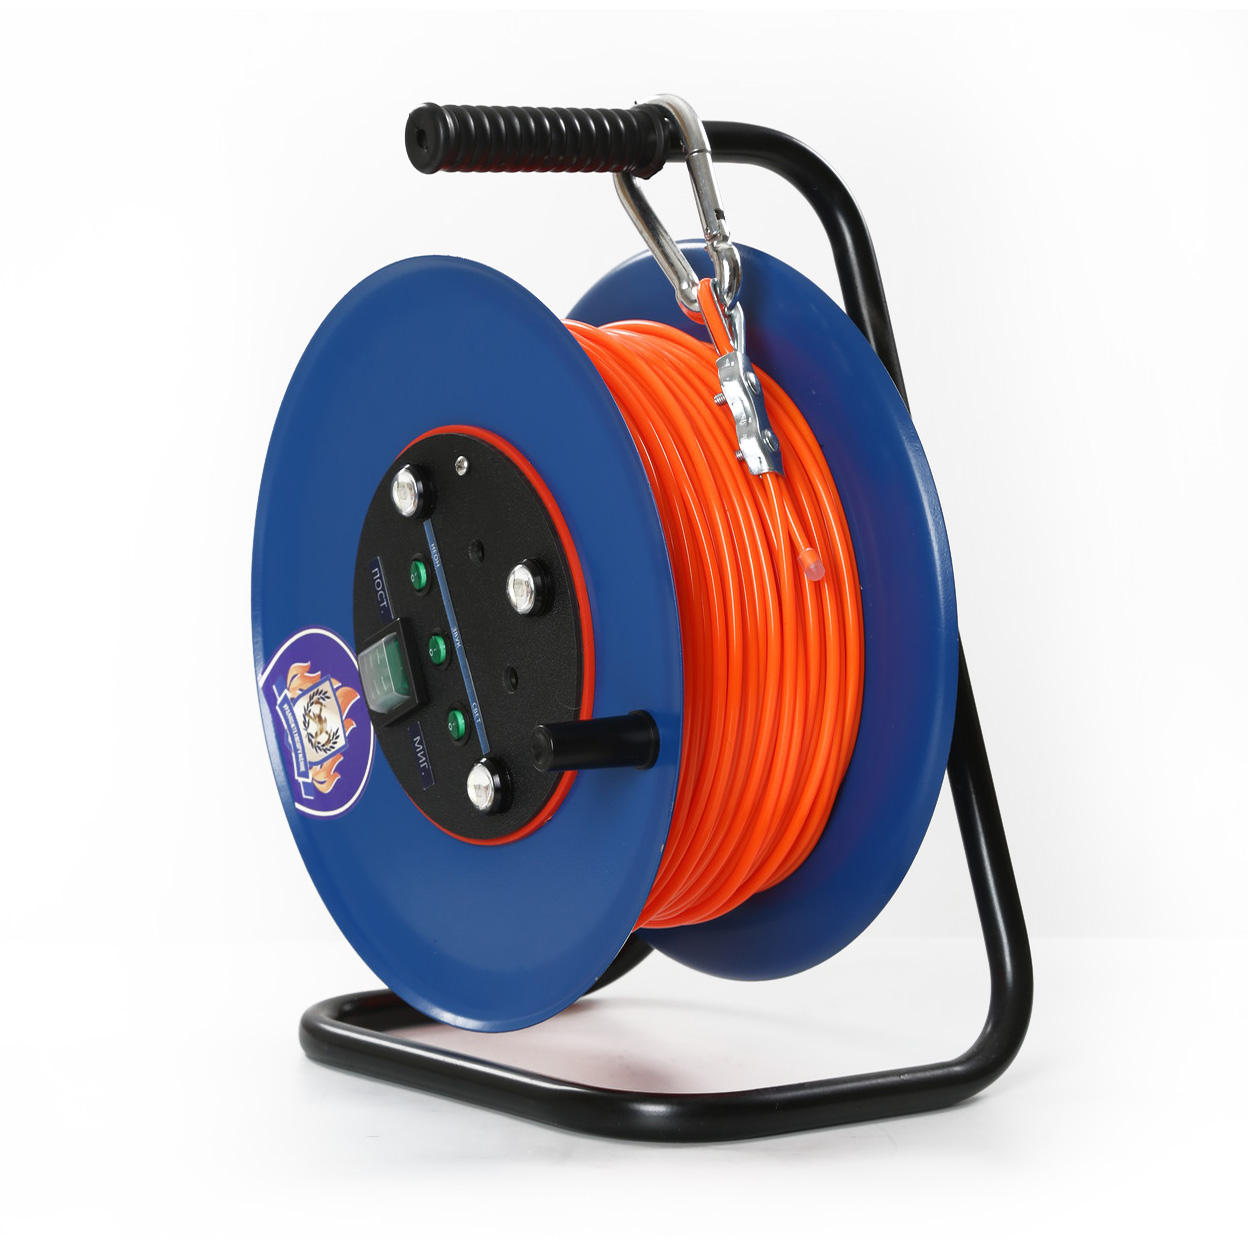 Evacuation glowind wire with sound signals for rescue operations